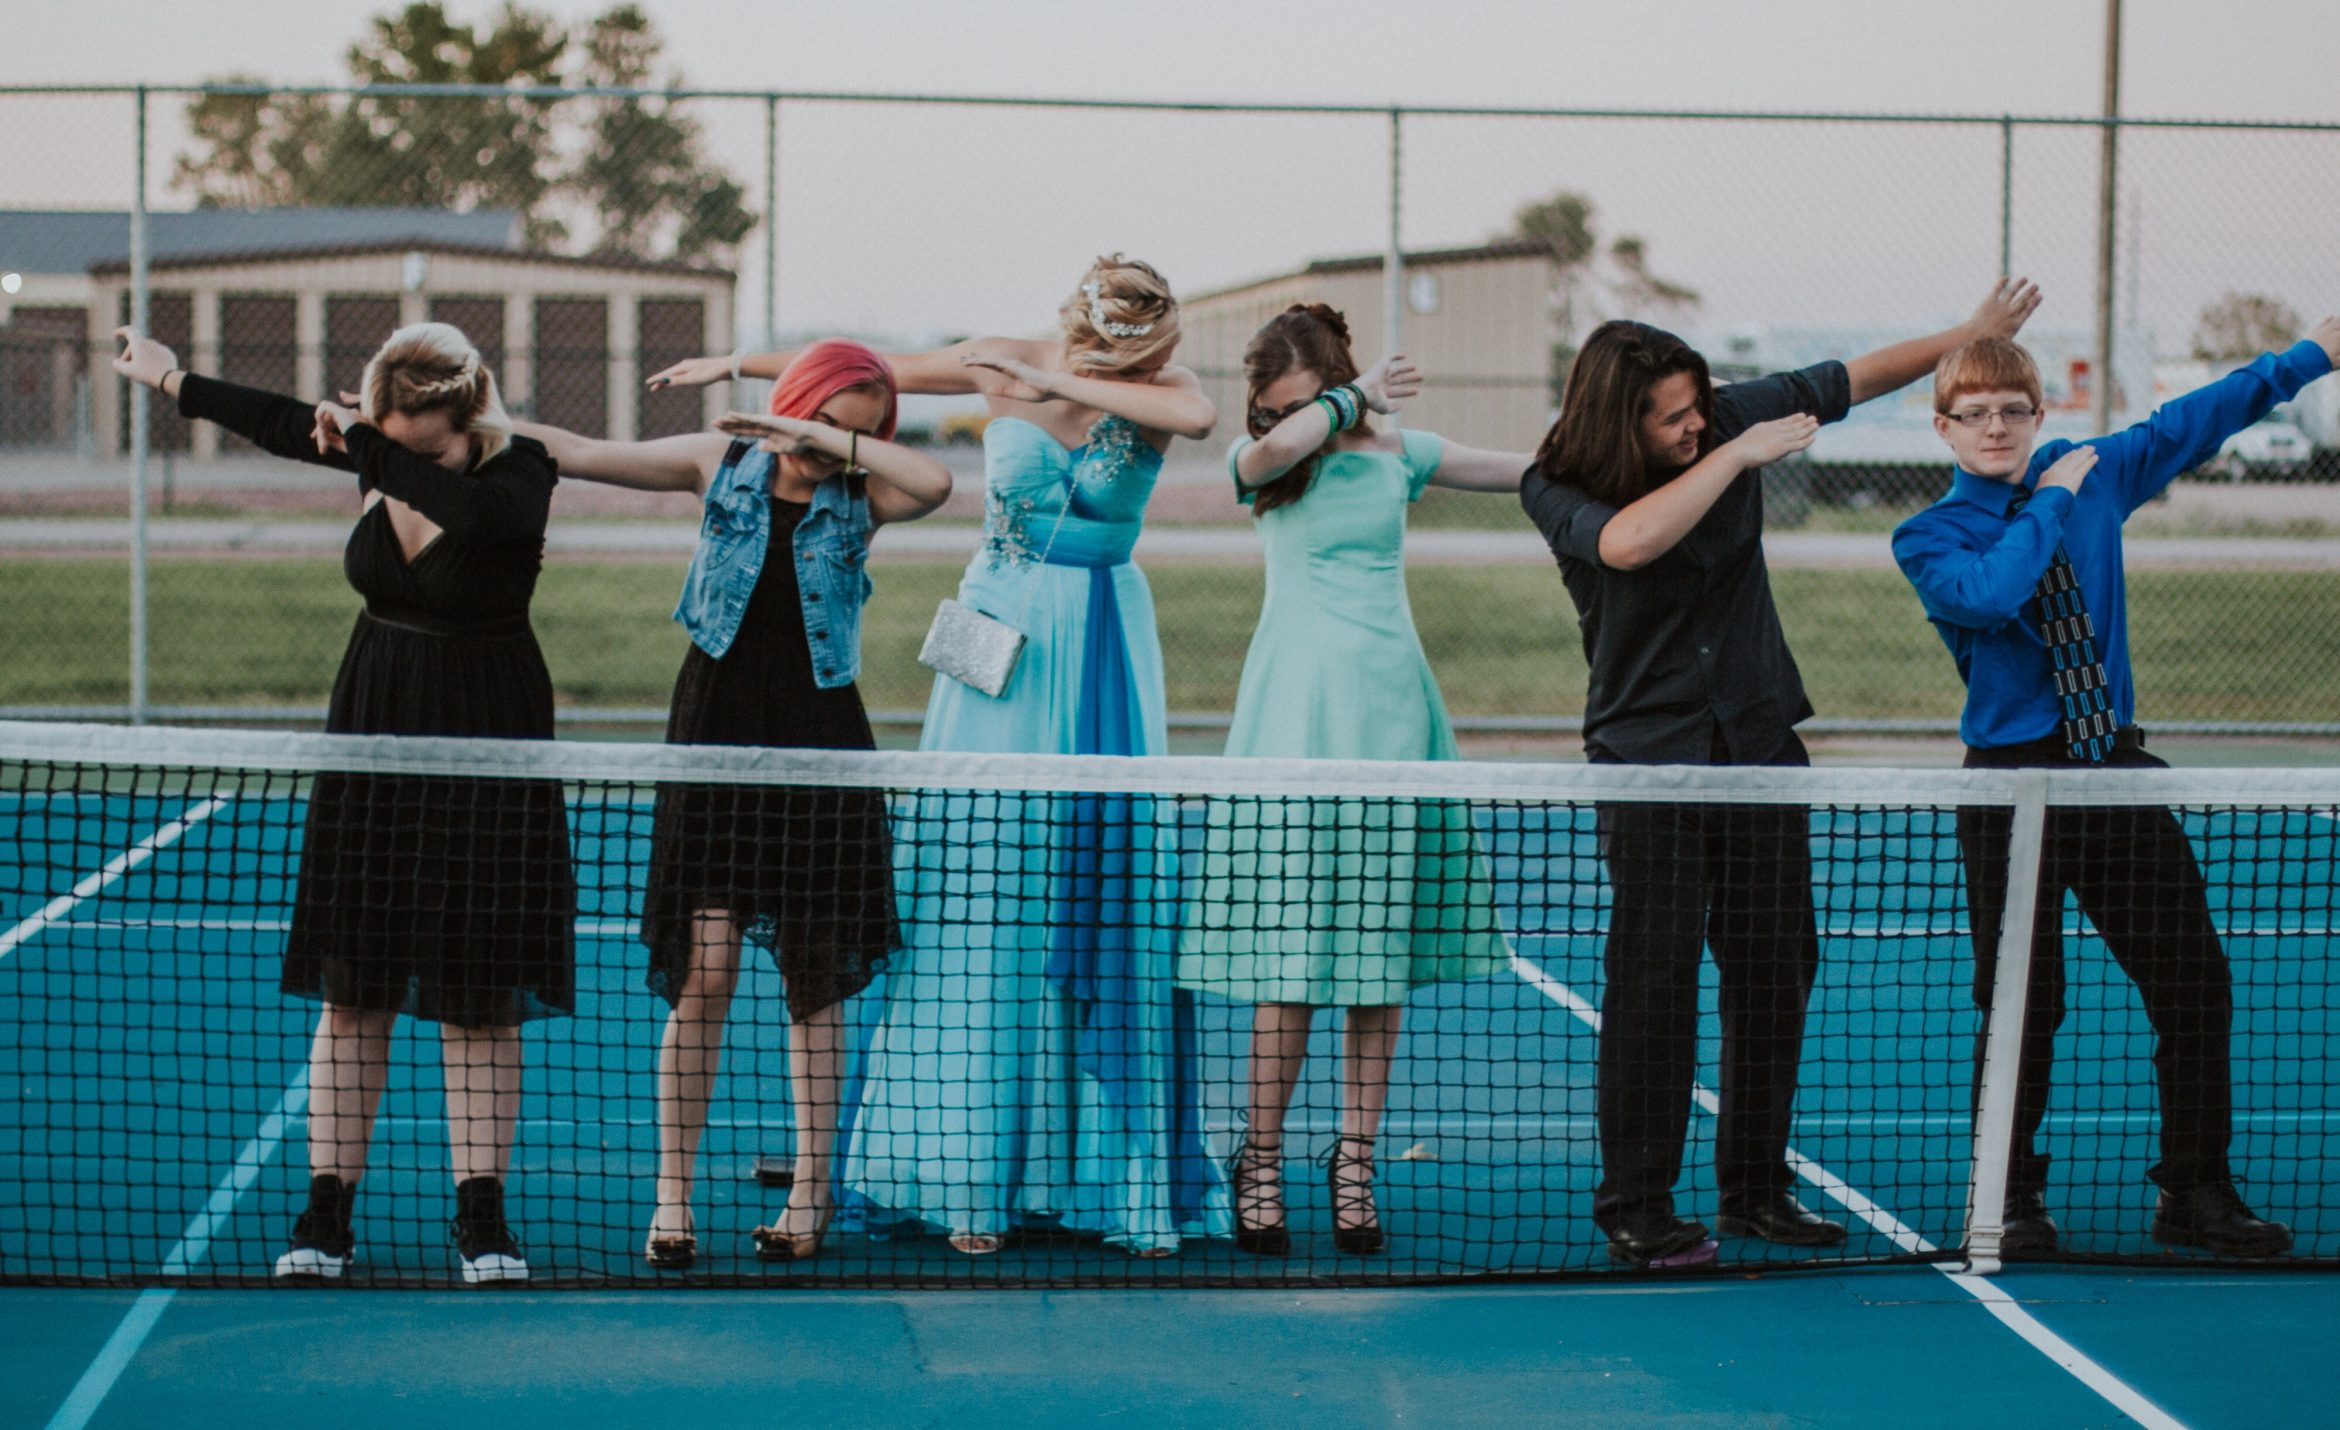 Over Half of Gen Z High Schoolers Don't Want A Date to Prom